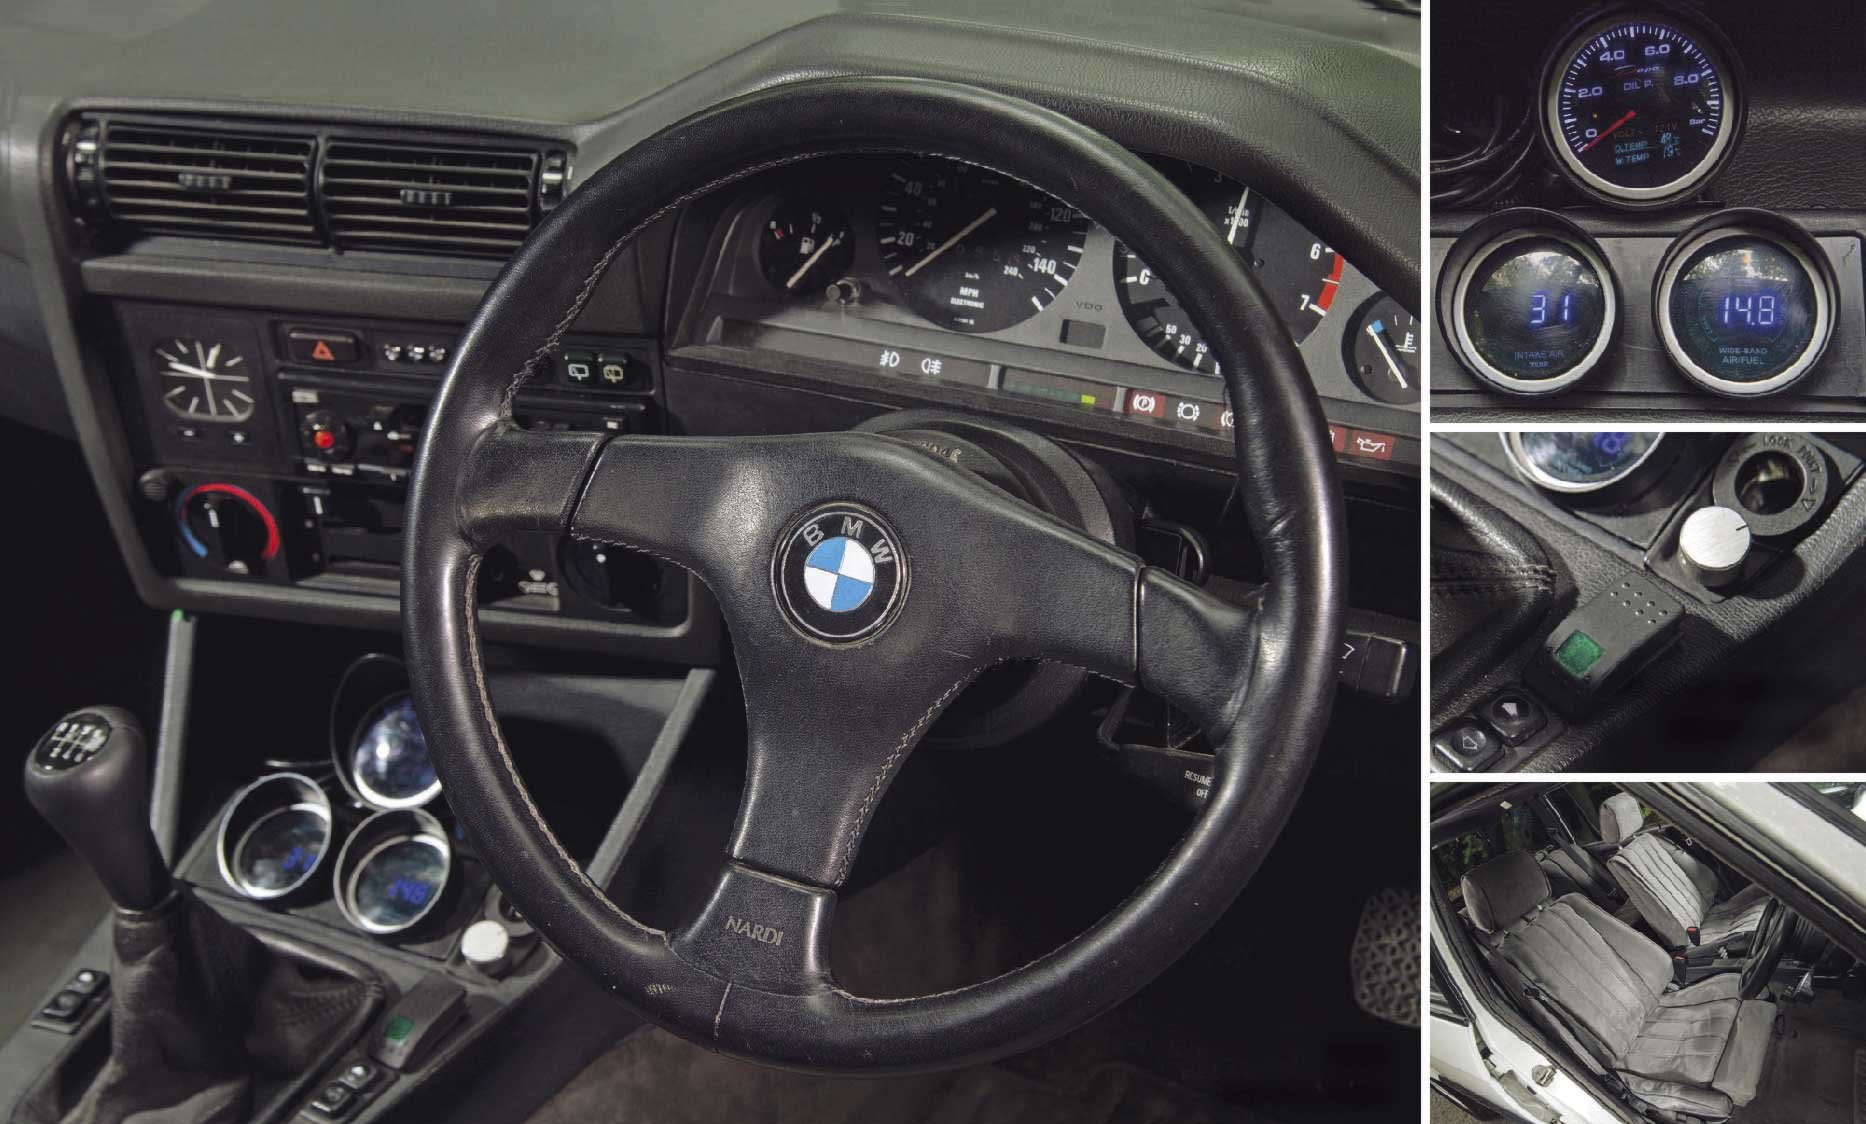 1989 520BHP BMW E30 Touring Supercharged V8 'Sleeper' For Sale (picture 4 of 6)